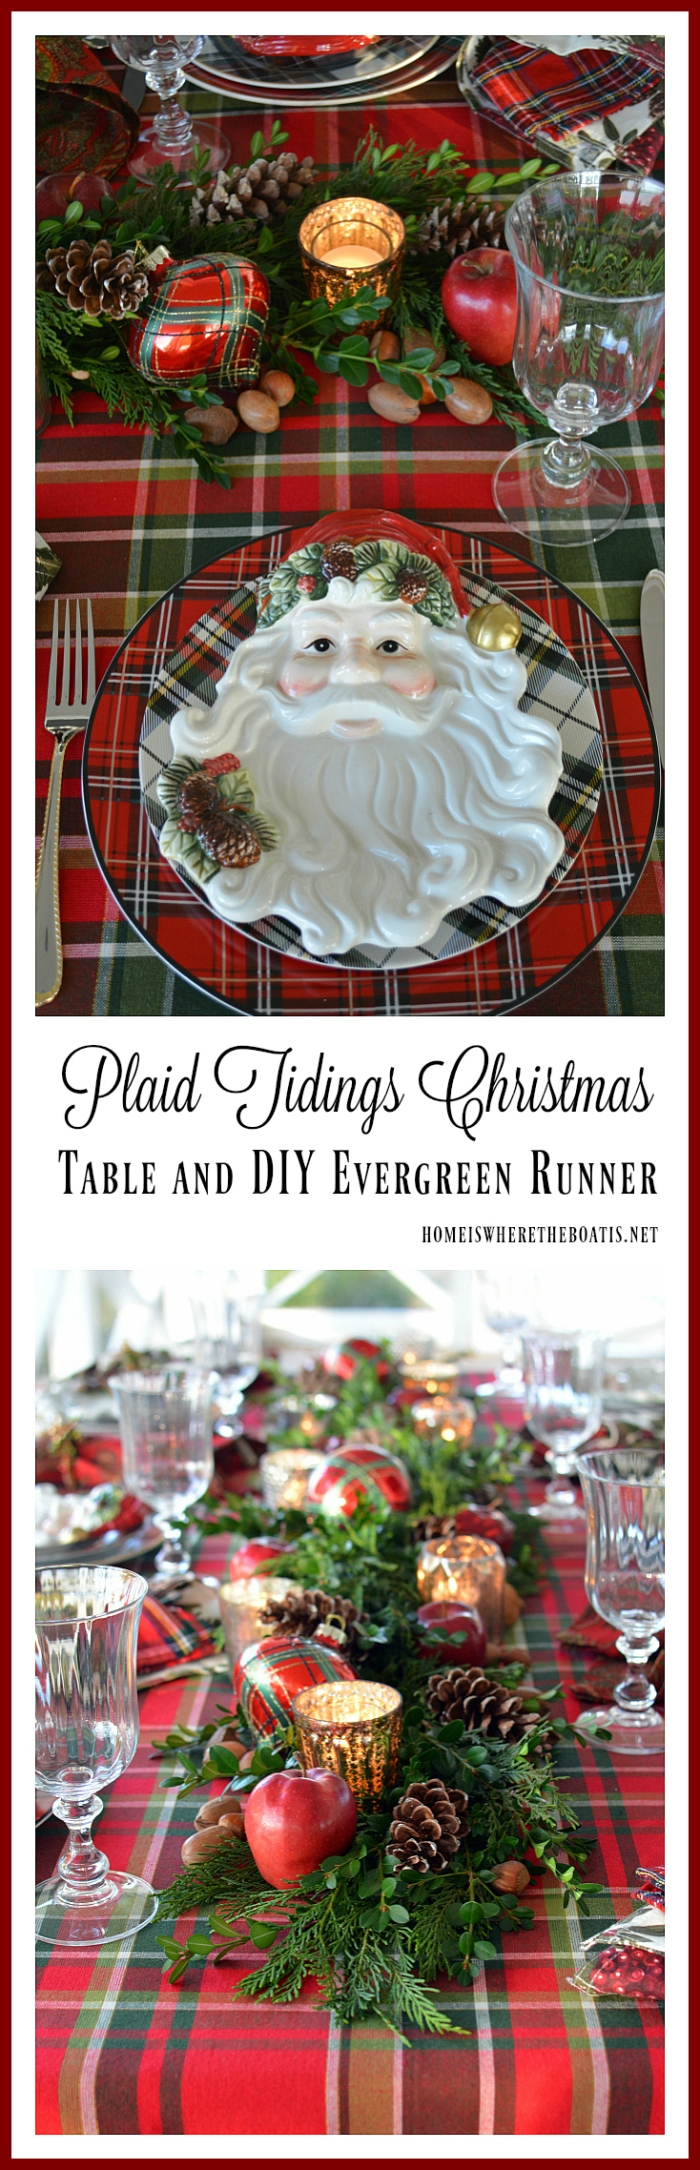 plaid-tidings-christmas-table